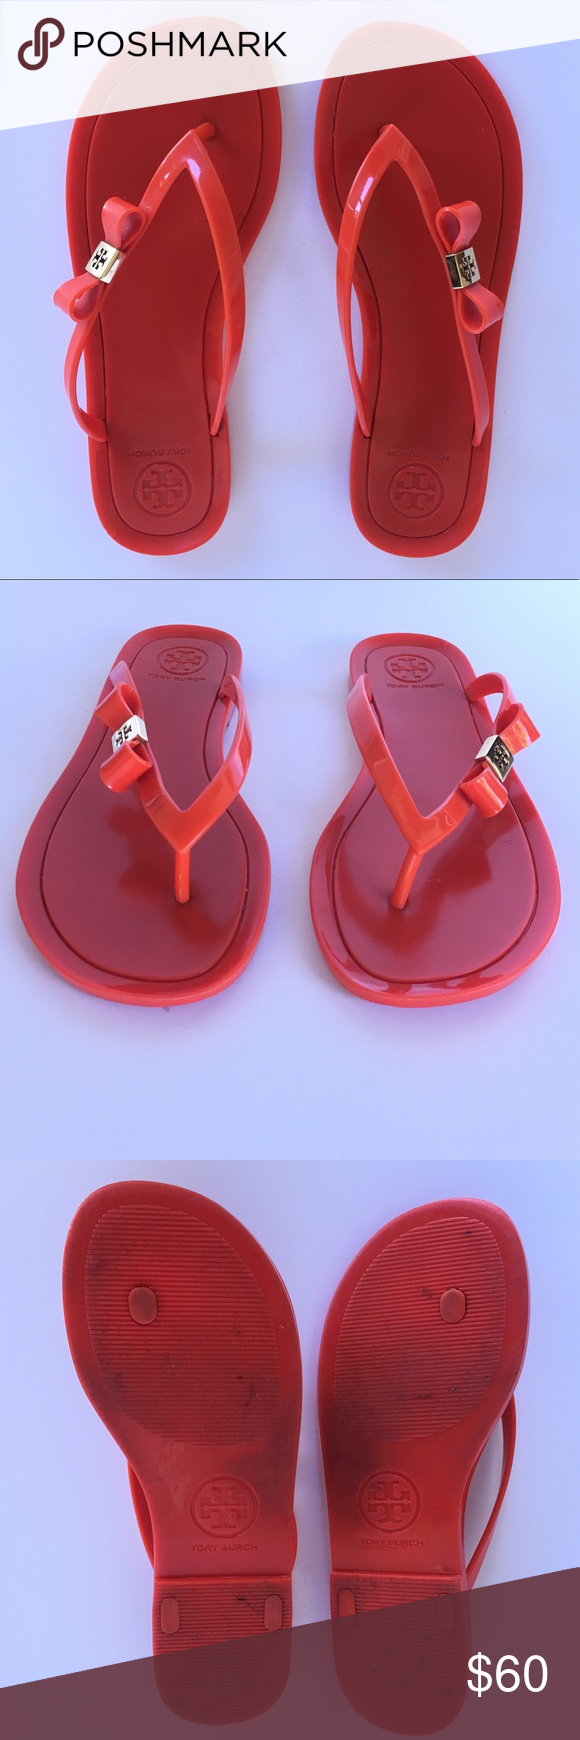 52482ee6d764 Tory Burch Jelly Sandals Chic Tory Burch glossy red-orange Michaela jelly  flip flops accented with bow   gold emblem. Women s size 8 (TTS).